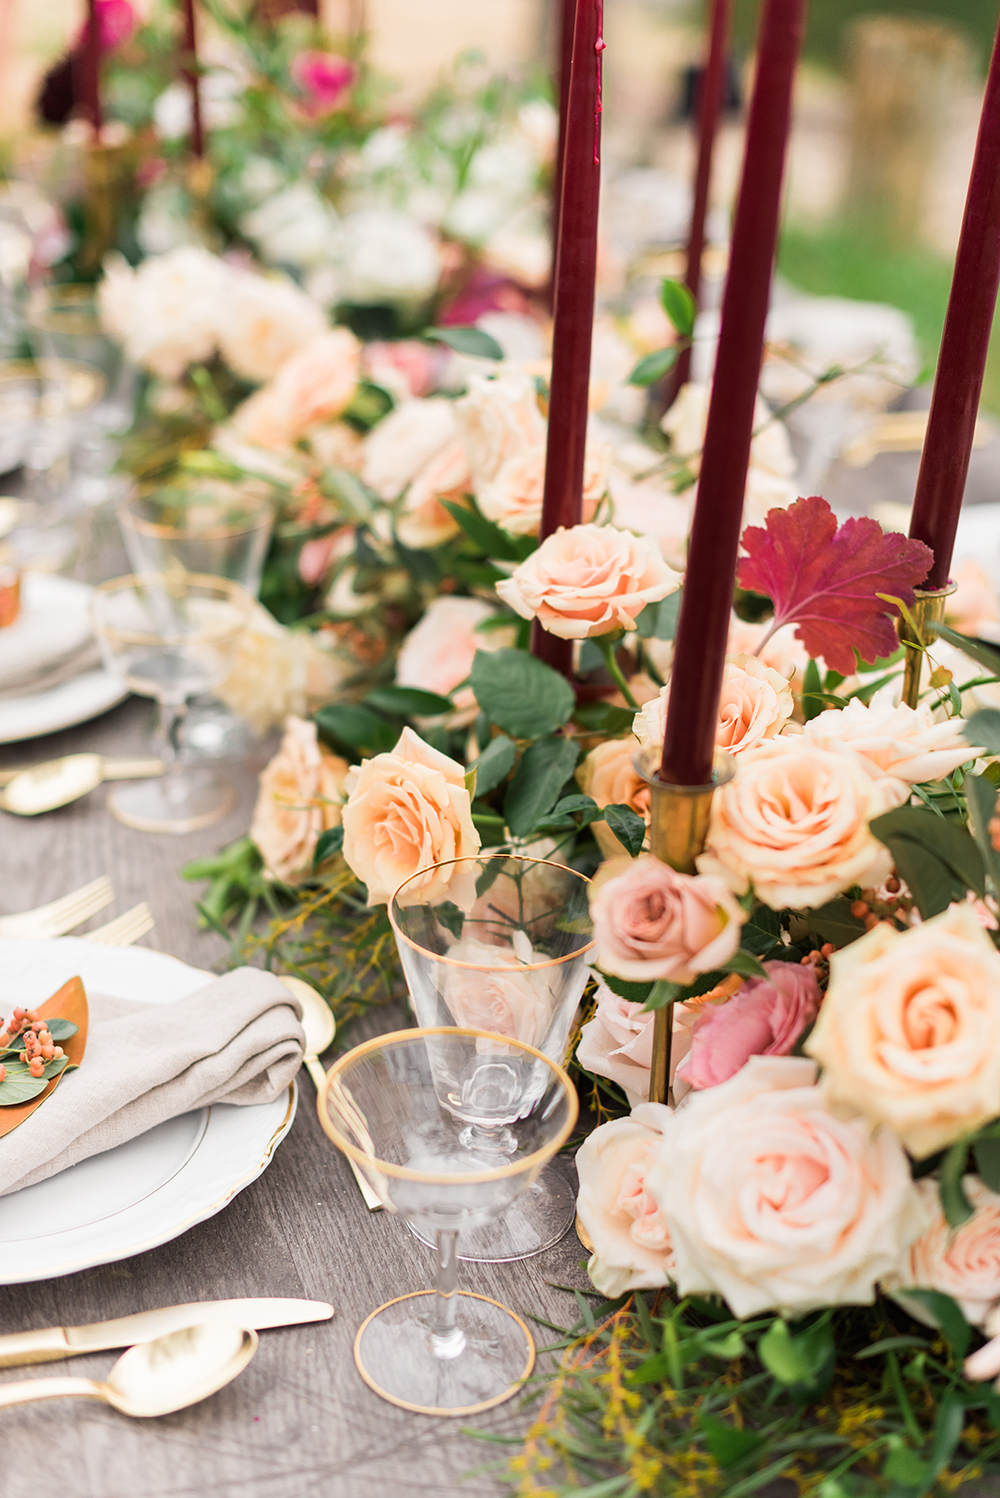 rose floral table runner - photo by Christa Breaugh Photography http://ruffledblog.com/early-fall-wedding-ideas